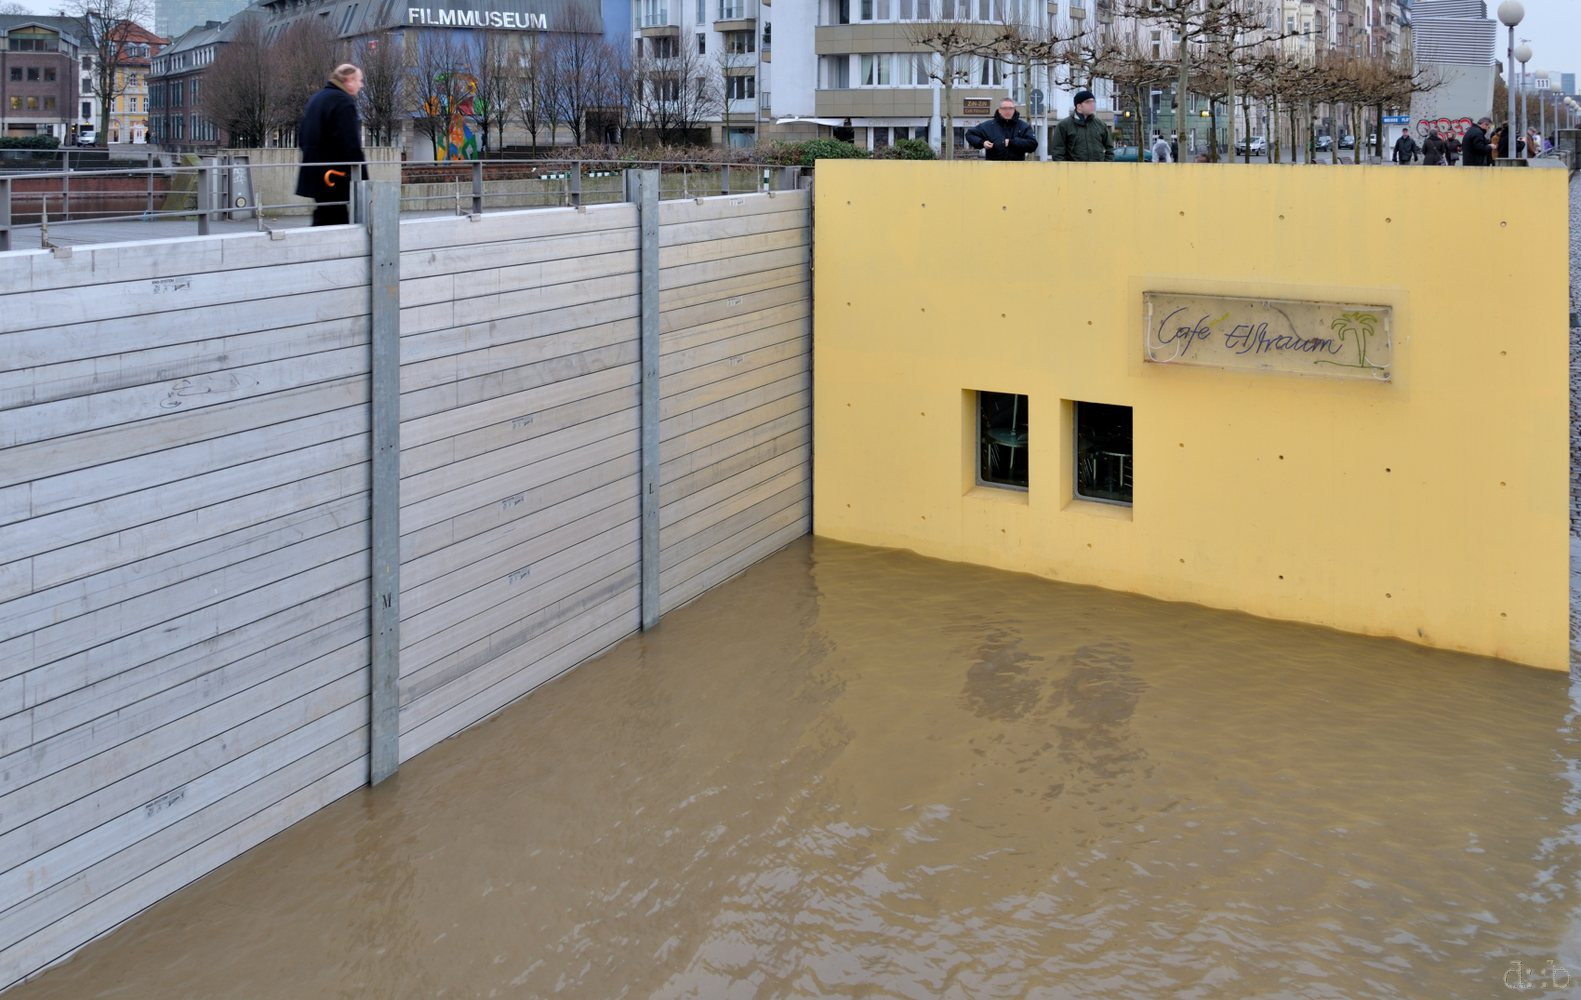 Passage between Düsseldorf's Altstadt and the Rhine riverside, during a winter flood.